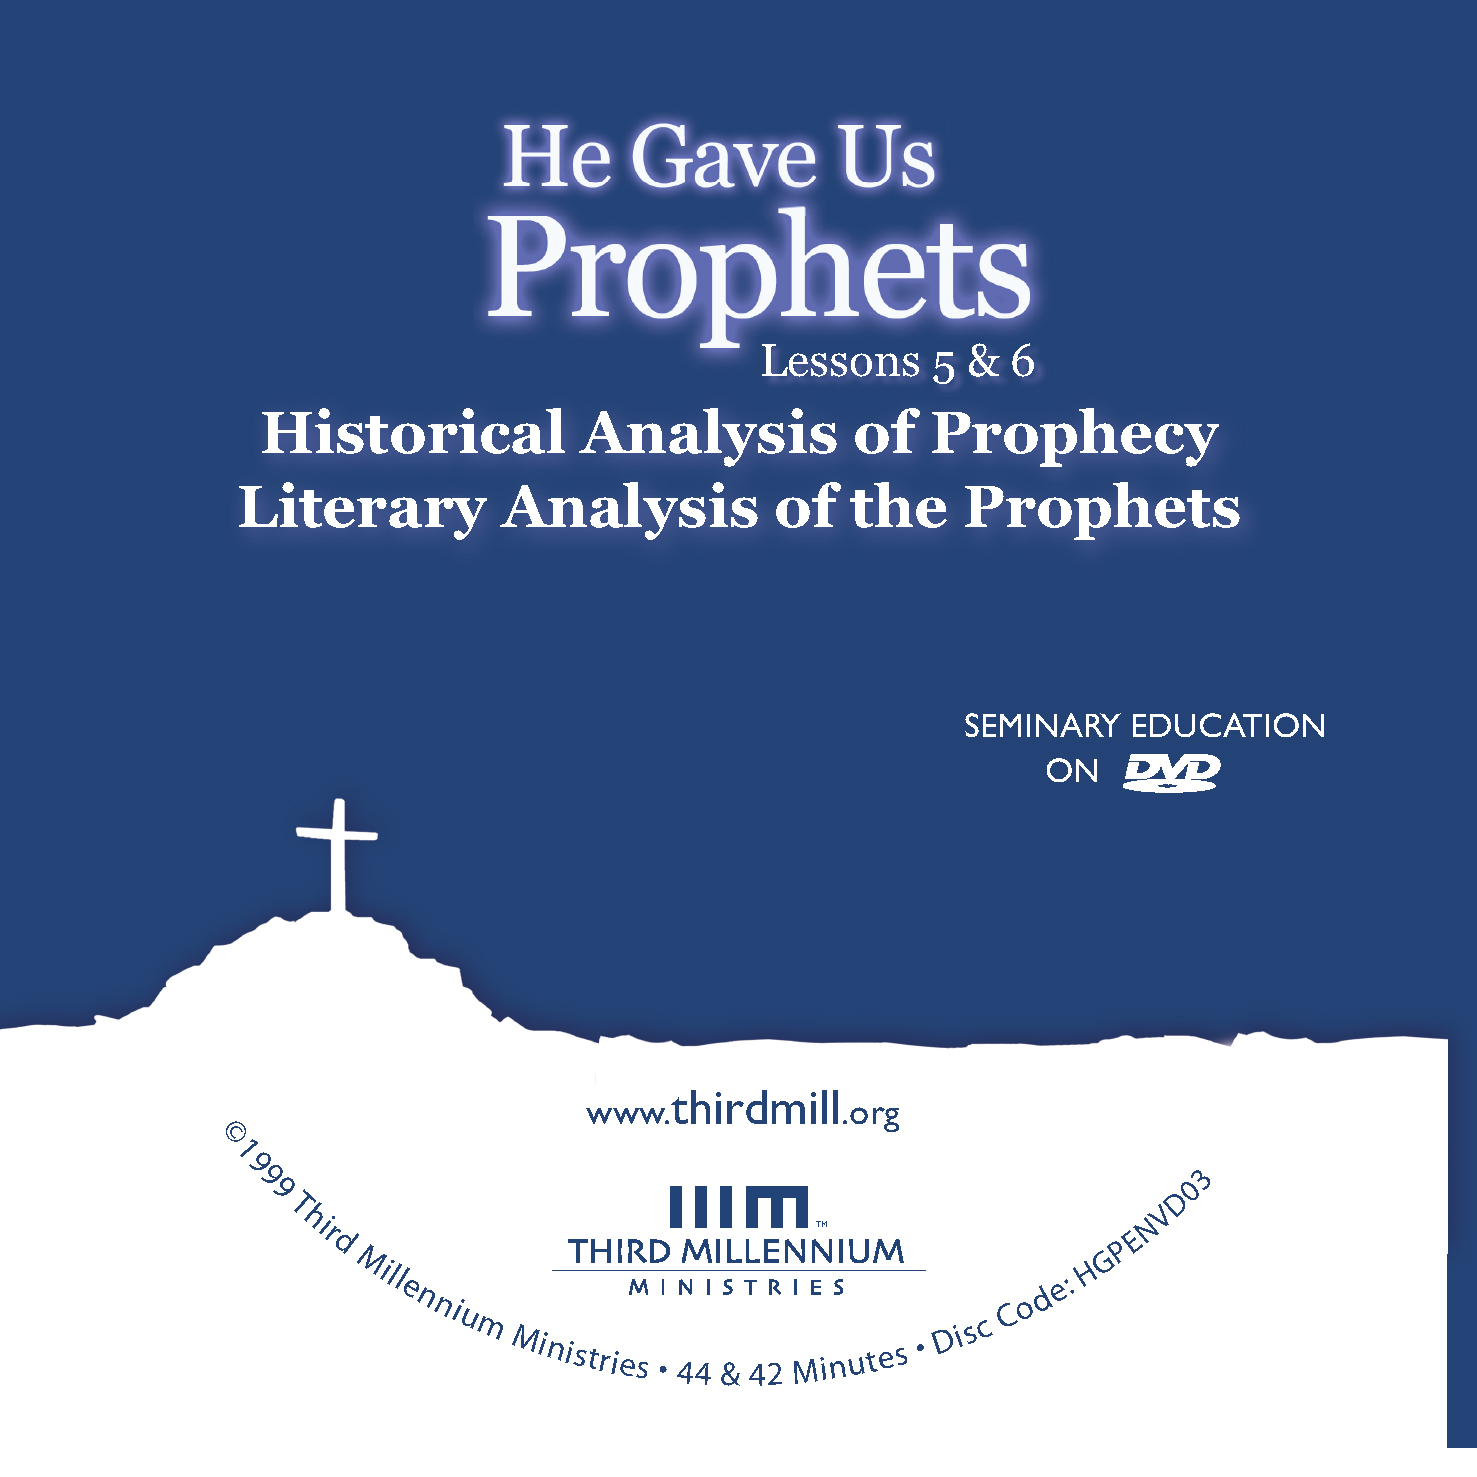 An analysis of biblical prophesy and prophets